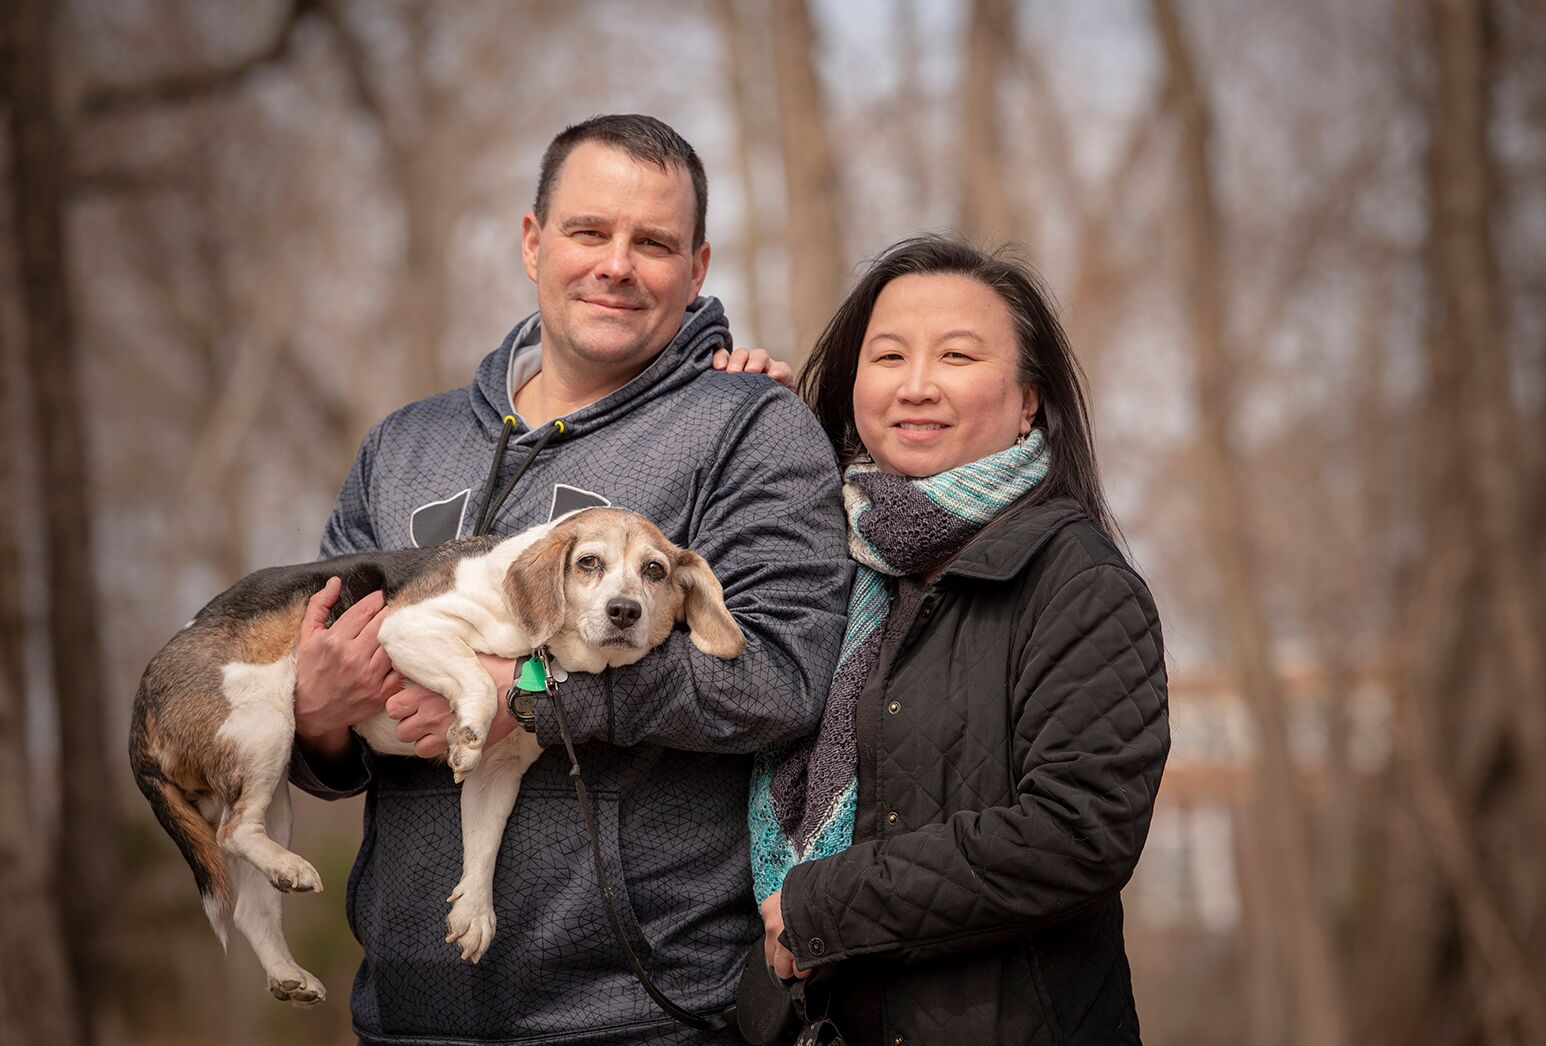 Man and woman standing outside, holding a small dog.